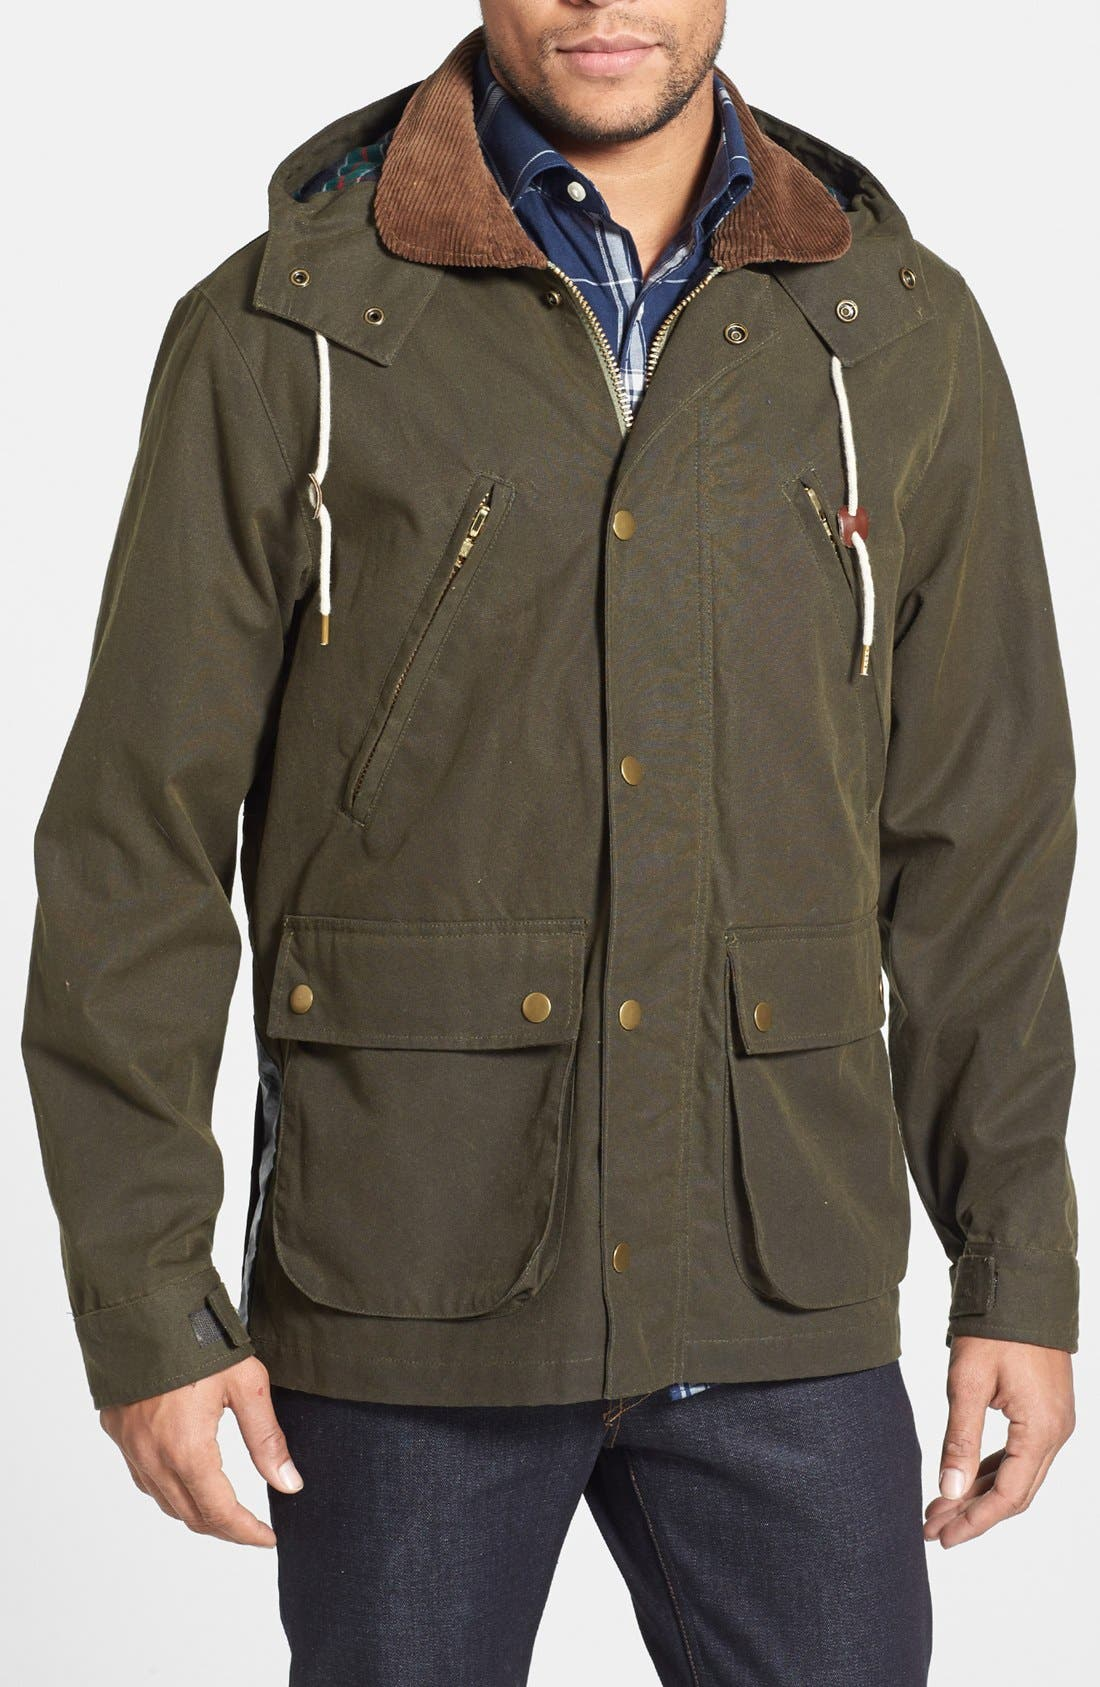 Alternate Image 1 Selected - Gant Rugger 'Wax Your Back' Waxed Cotton Field Jacket